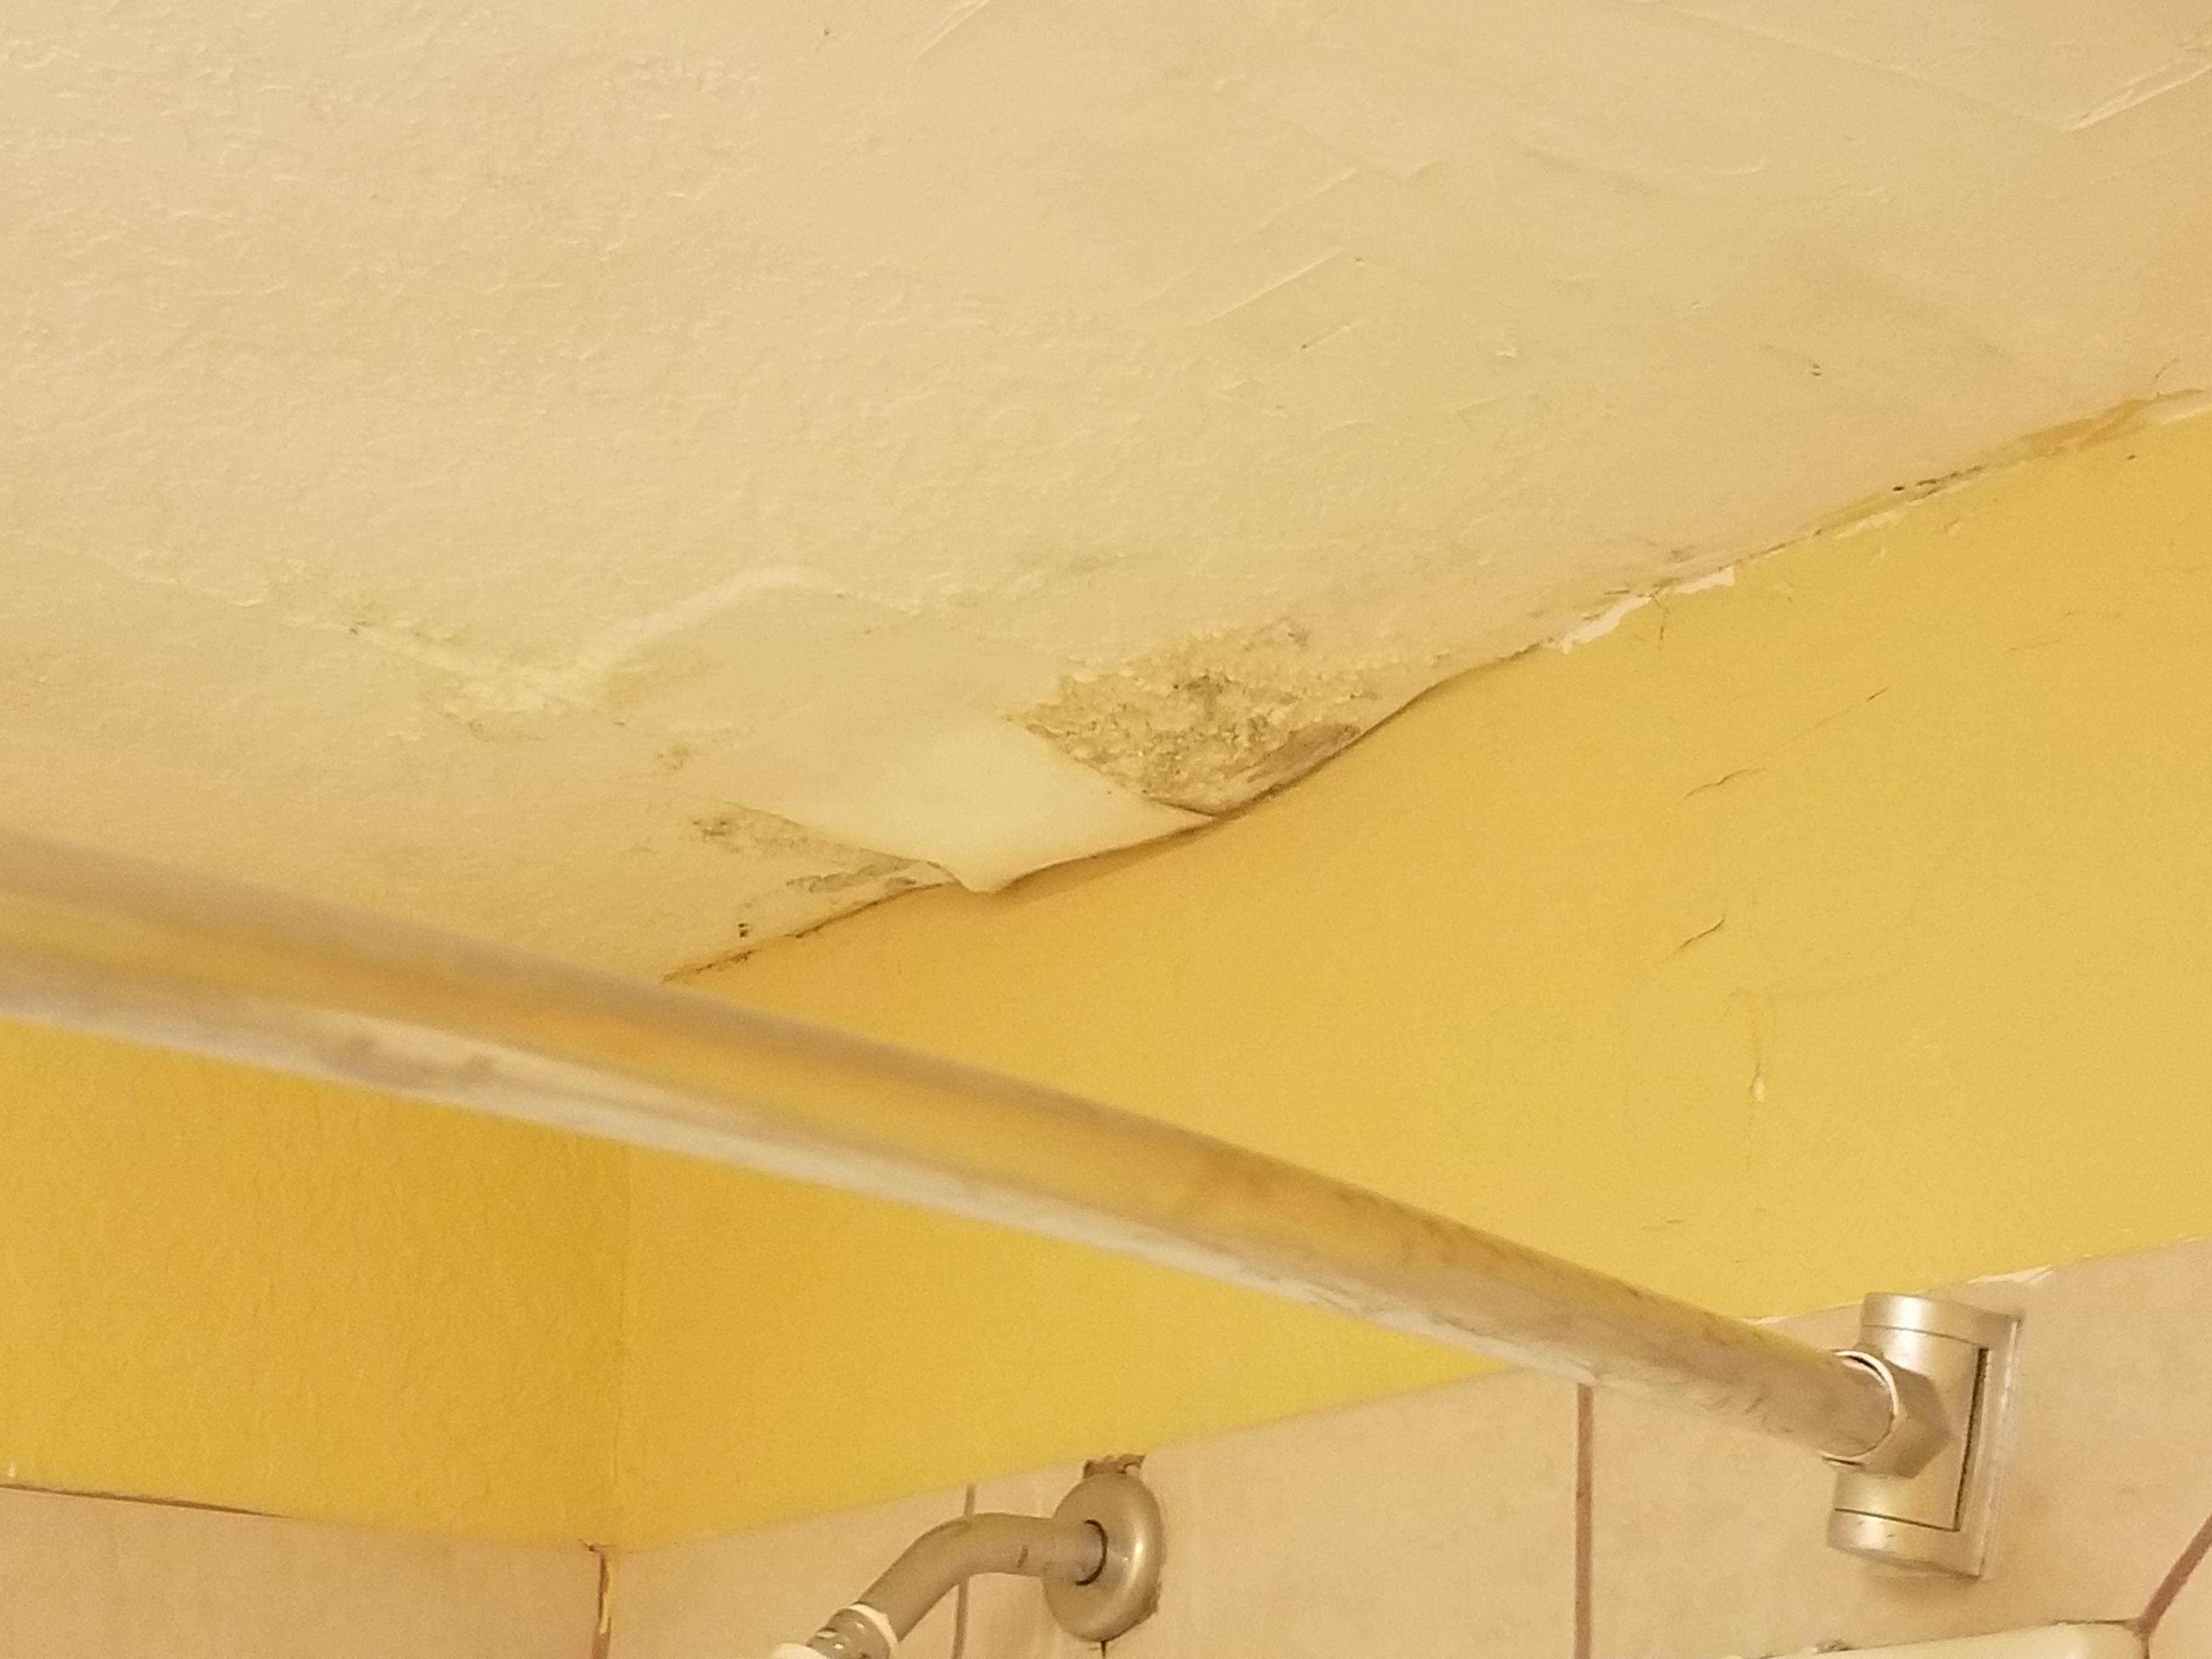 Source of mold